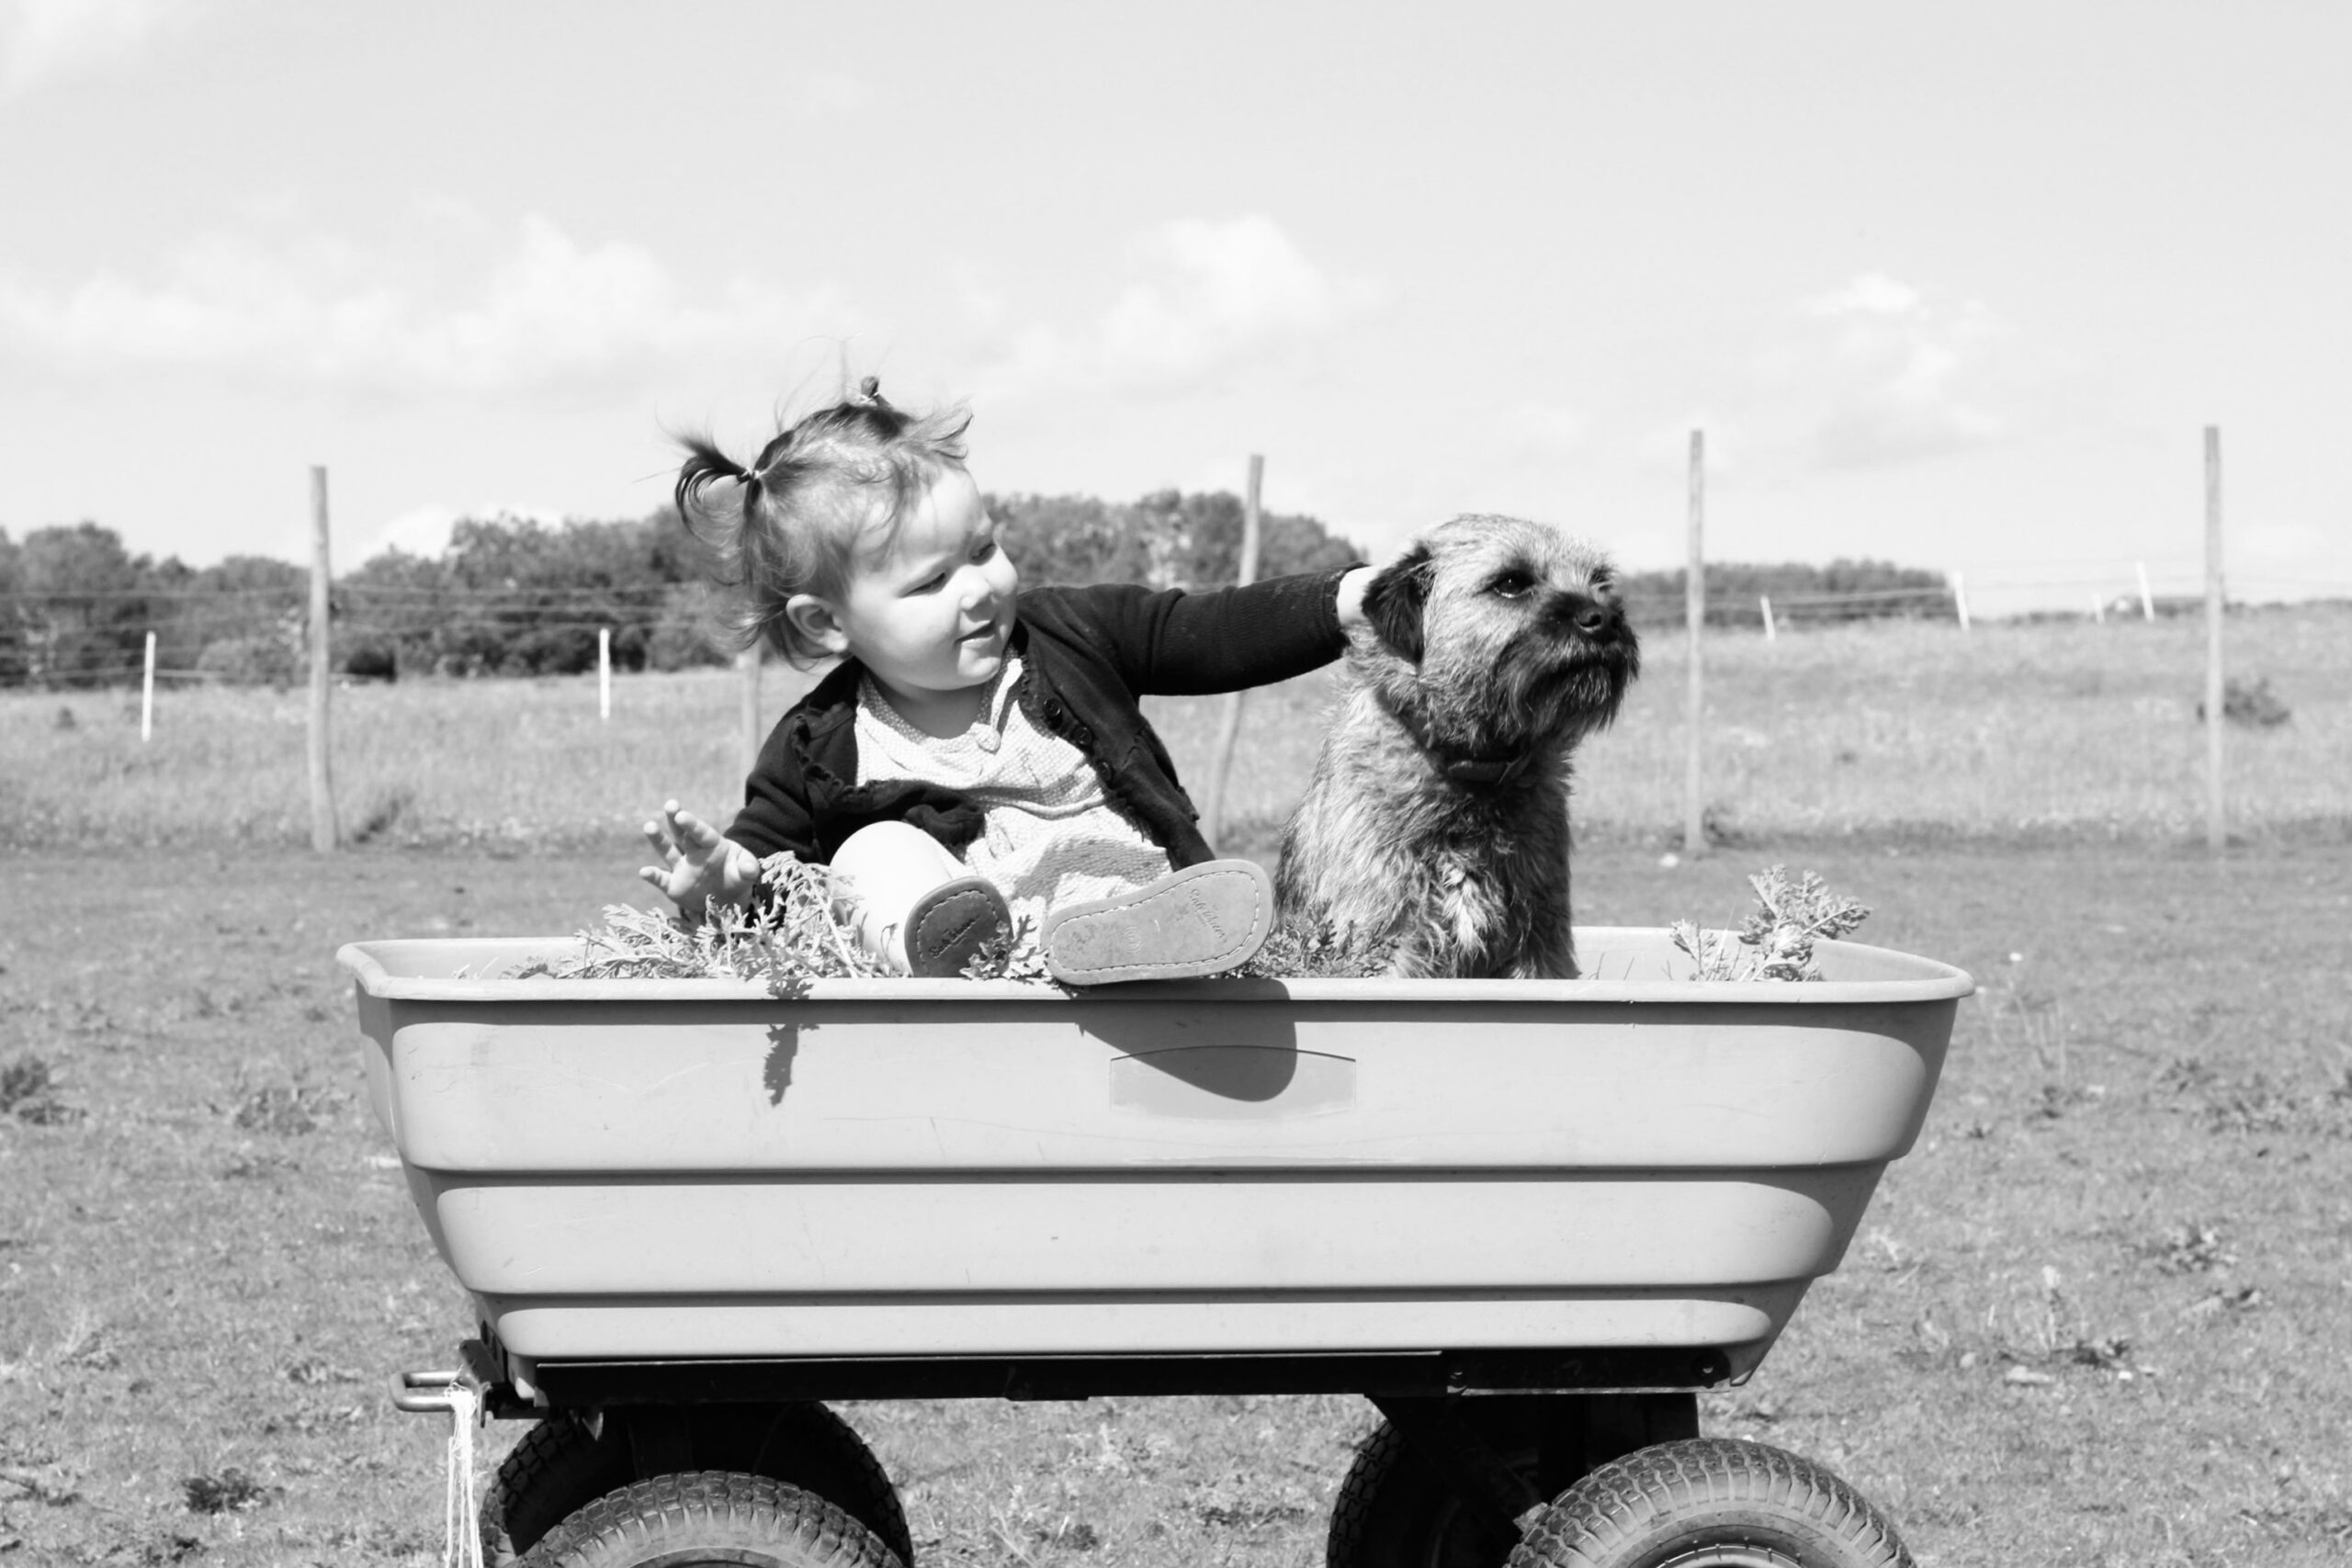 Black and white photo of a young girl and a dog sitting in a wagon in the countryside.